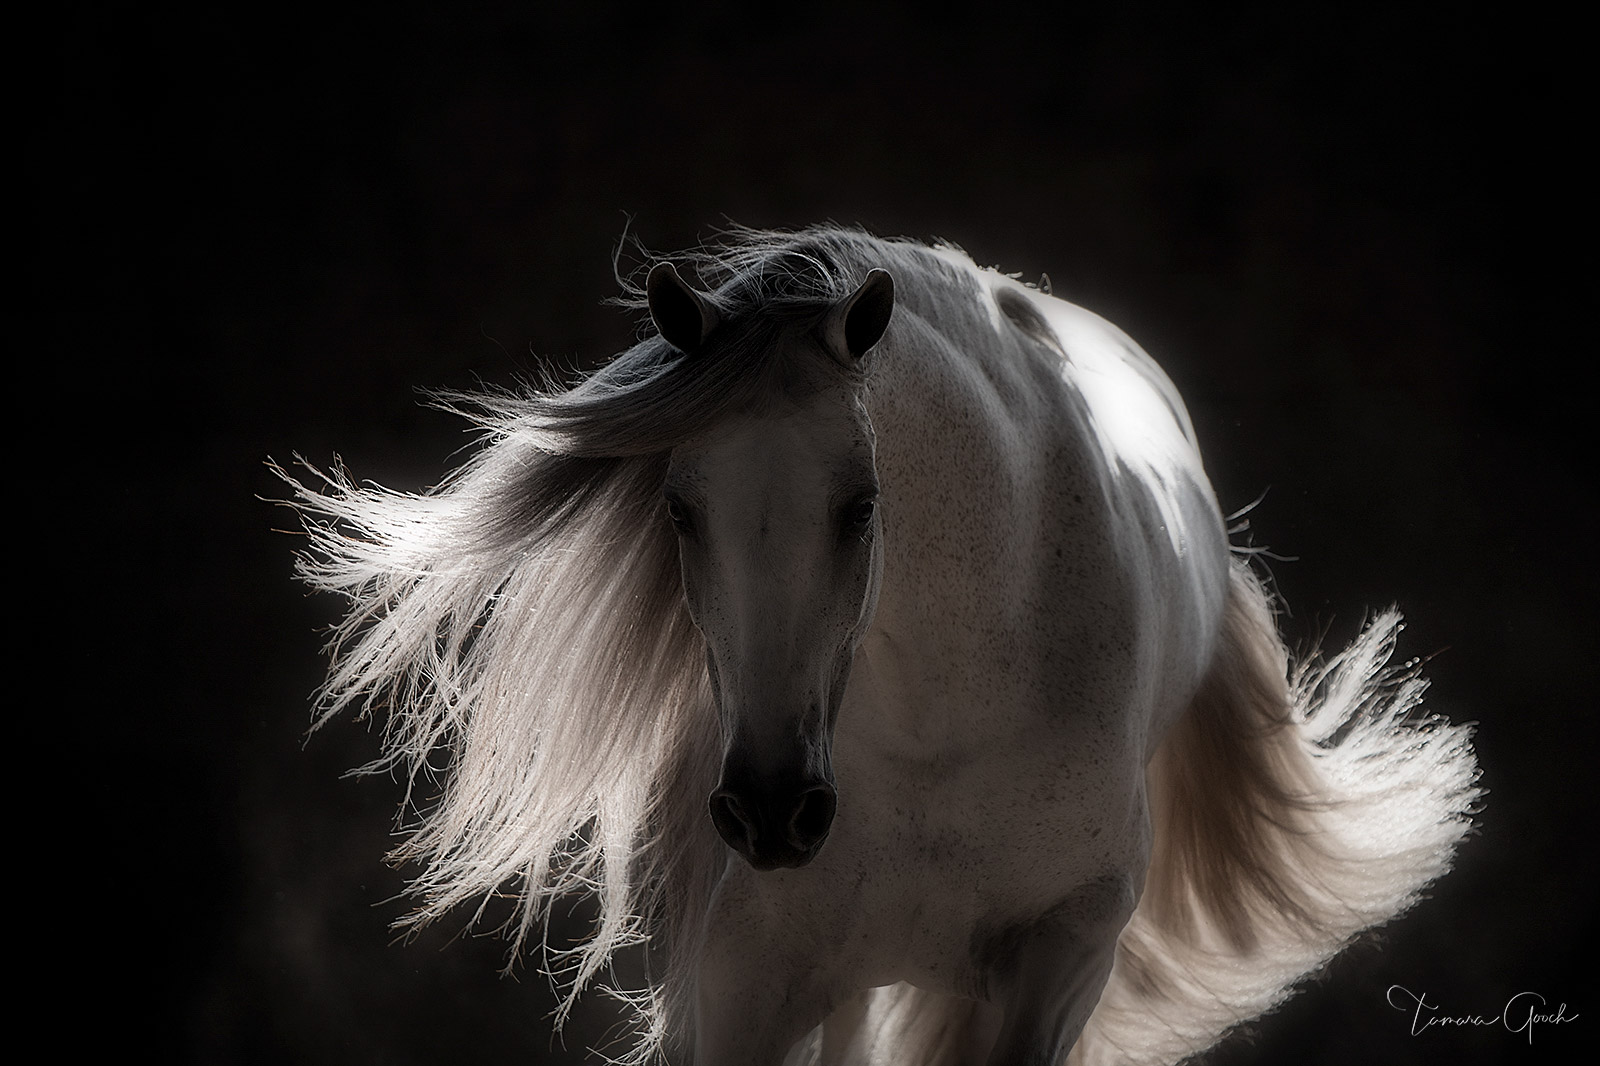 horse, horse photos, Andalusian, PRE, Spanish, Pure Spanish Horse, grey, gray, photography, horse photography, black and white, mane, tail, light, back light, equine, equestrian, lifestyle, prints, , photo